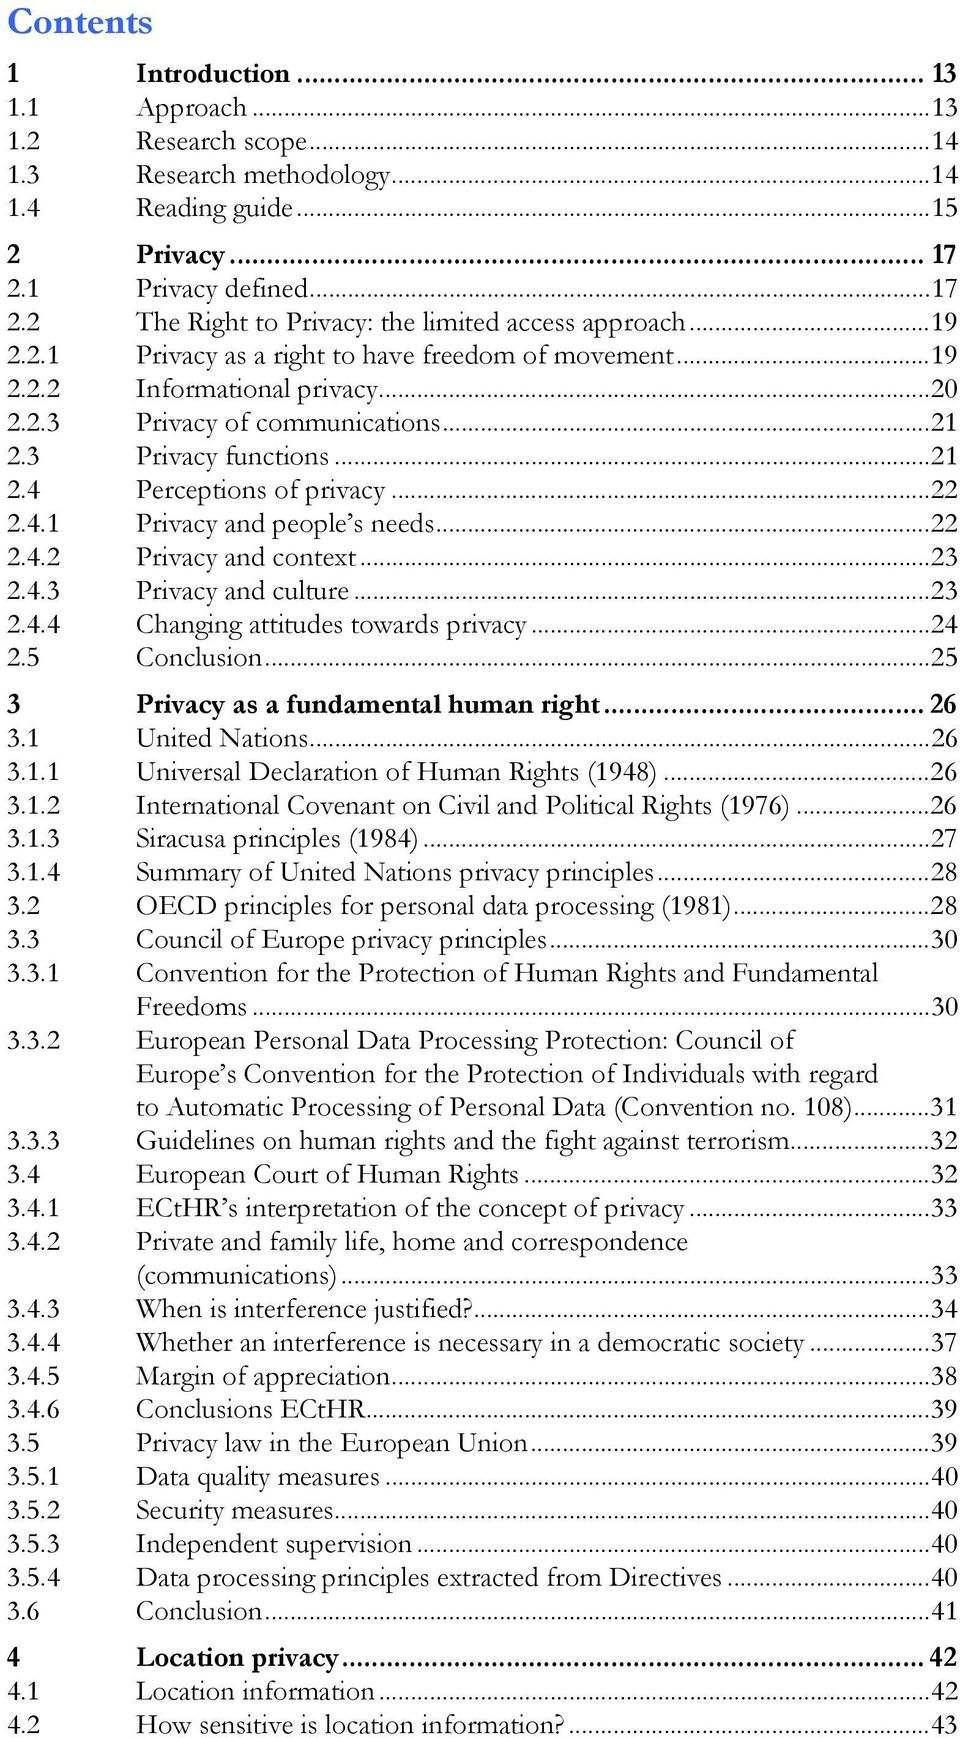 ..22 2.4.2 Privacy and context...23 2.4.3 Privacy and culture...23 2.4.4 Changing attitudes towards privacy...24 2.5 Conclusion...25 3 Privacy as a fundamental human right... 26 3.1 United Nations.